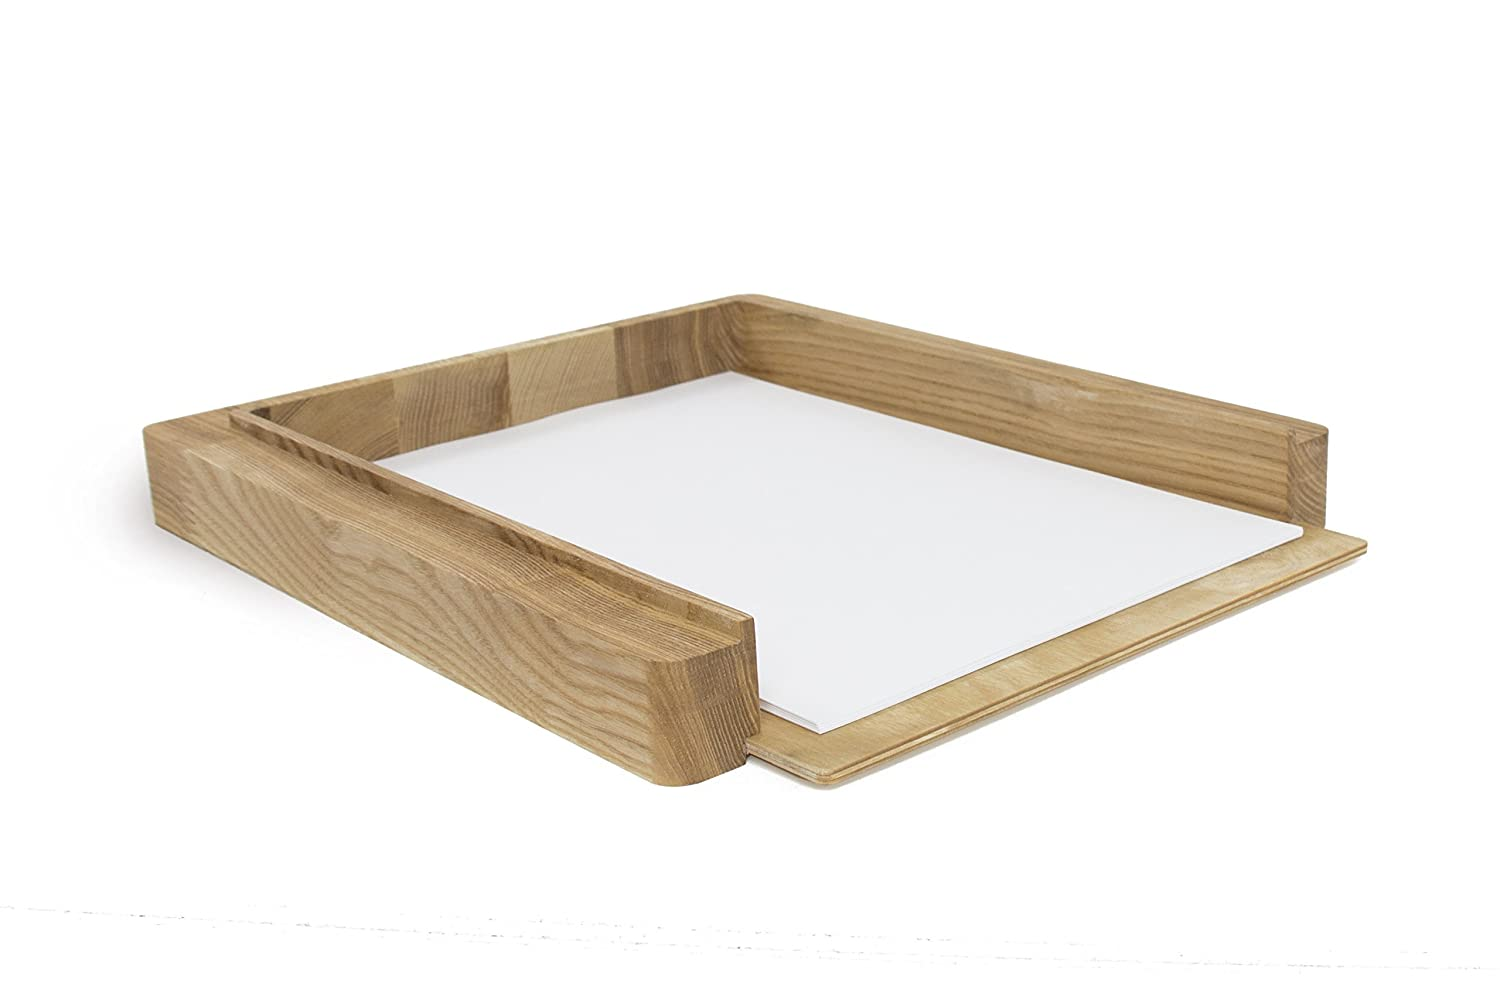 Wooden paper tray - Wooden paper holder - Size 13.5x11.2x1.5